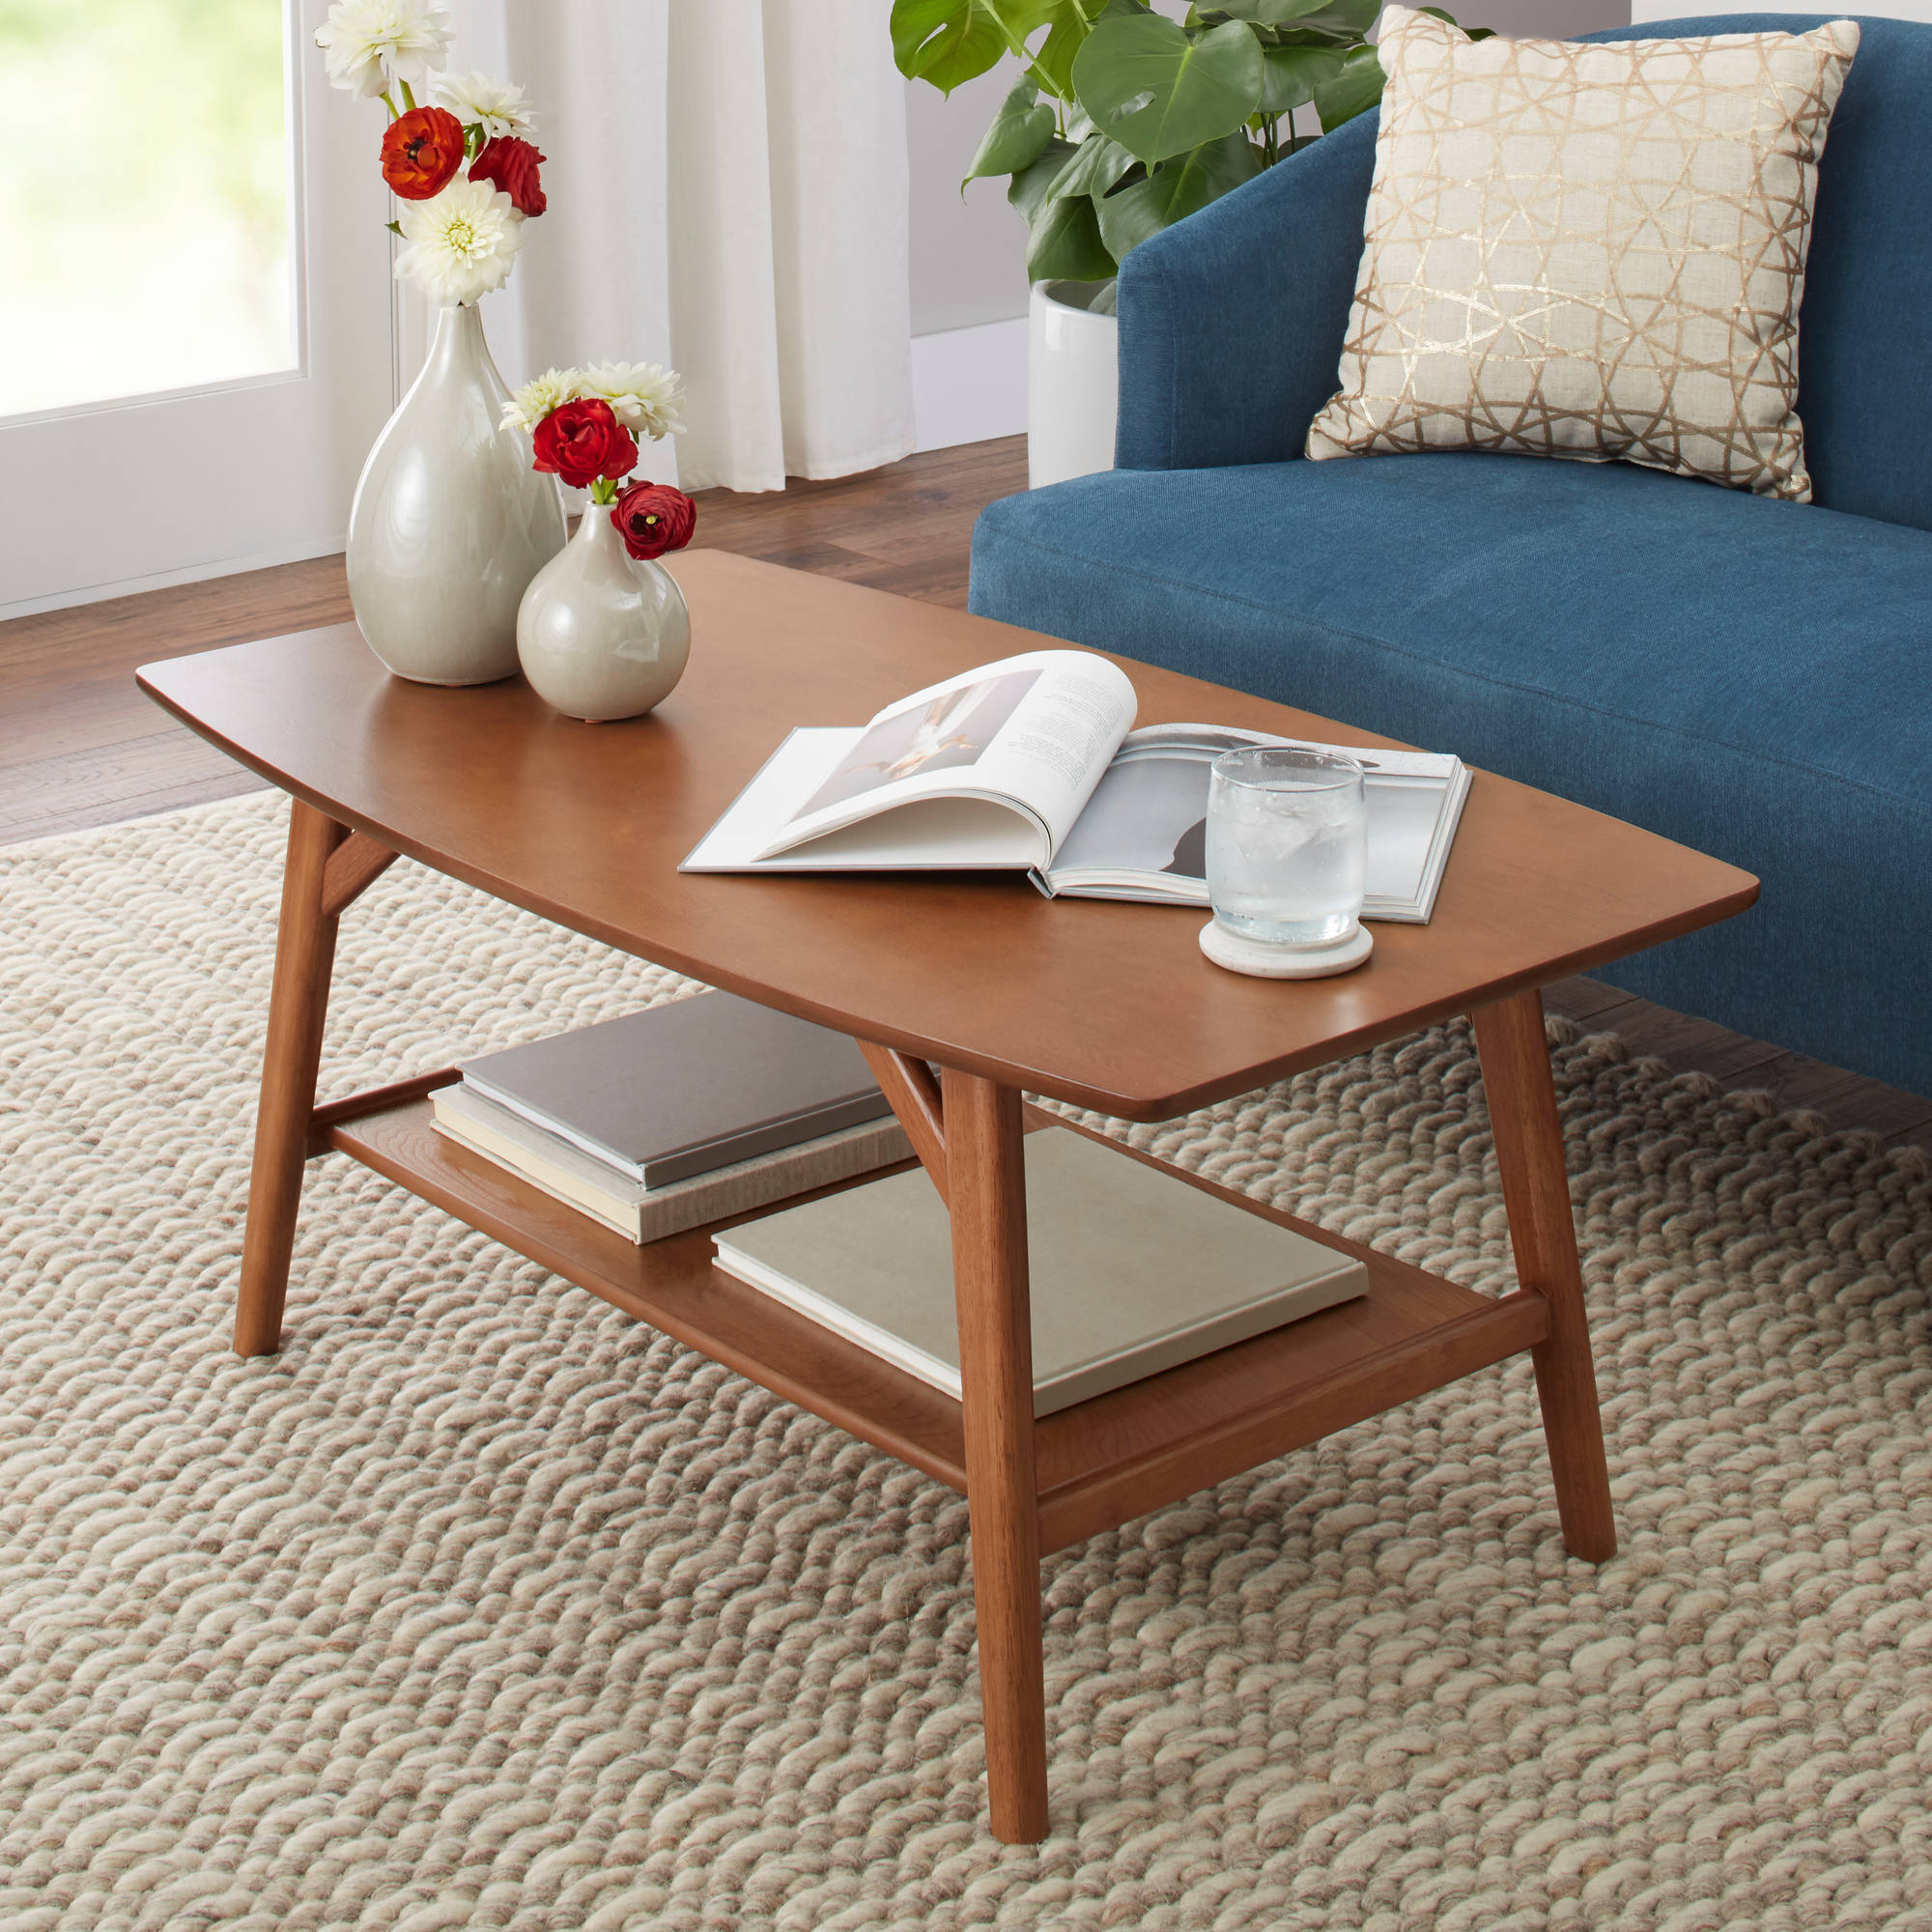 Better Homes Gardens Reed Mid Century Modern Coffee Table Pecan